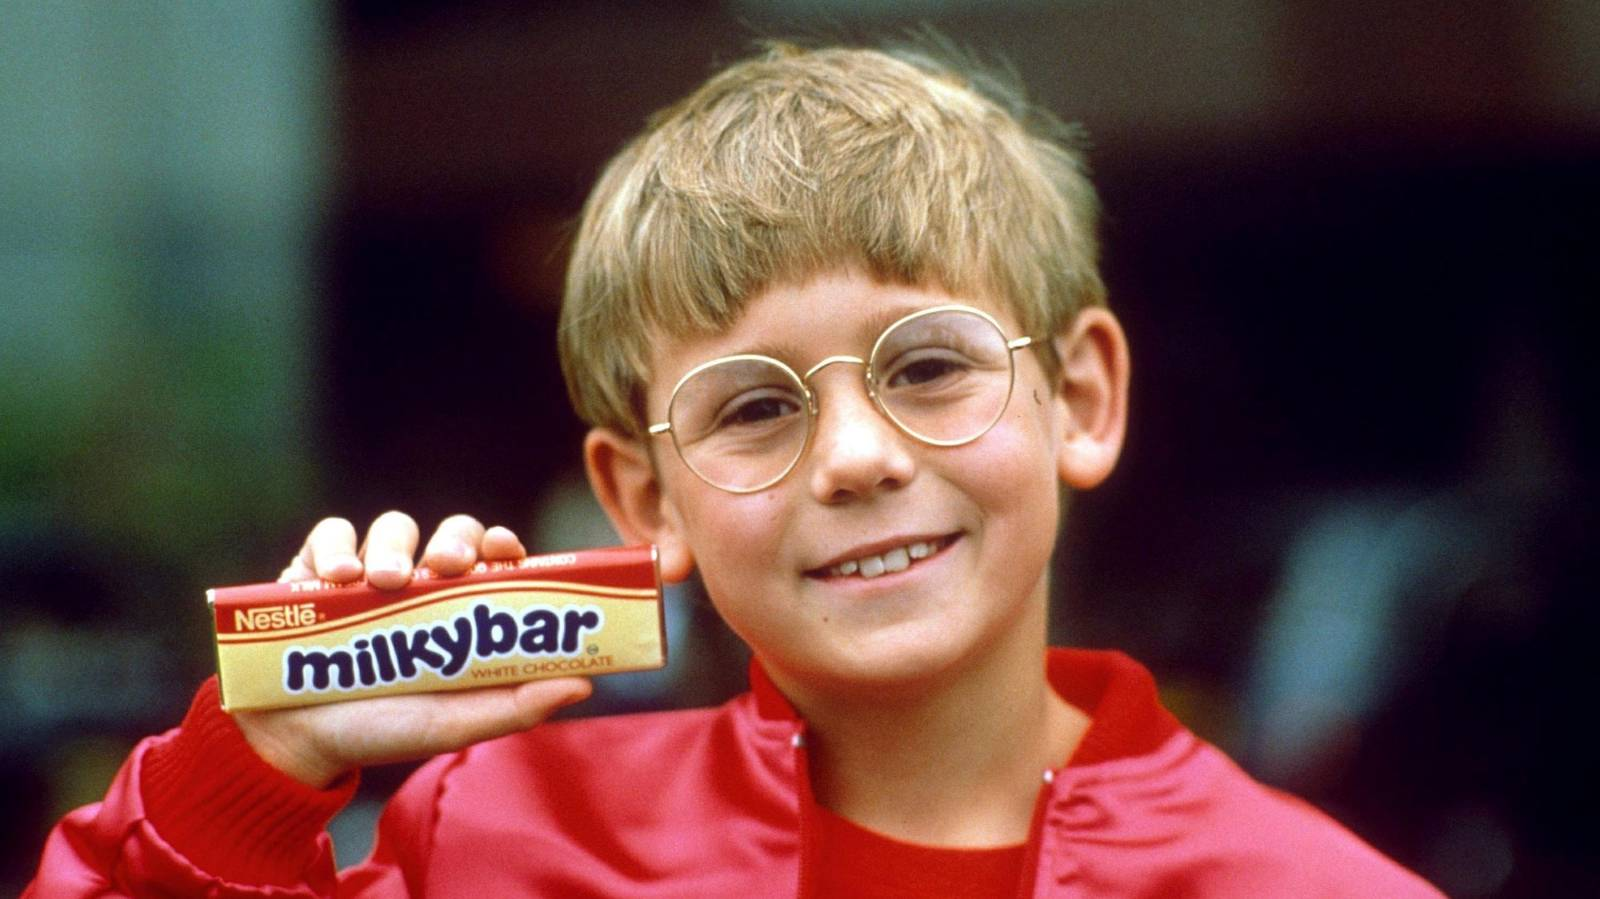 So you want to be the Milkybar kid?